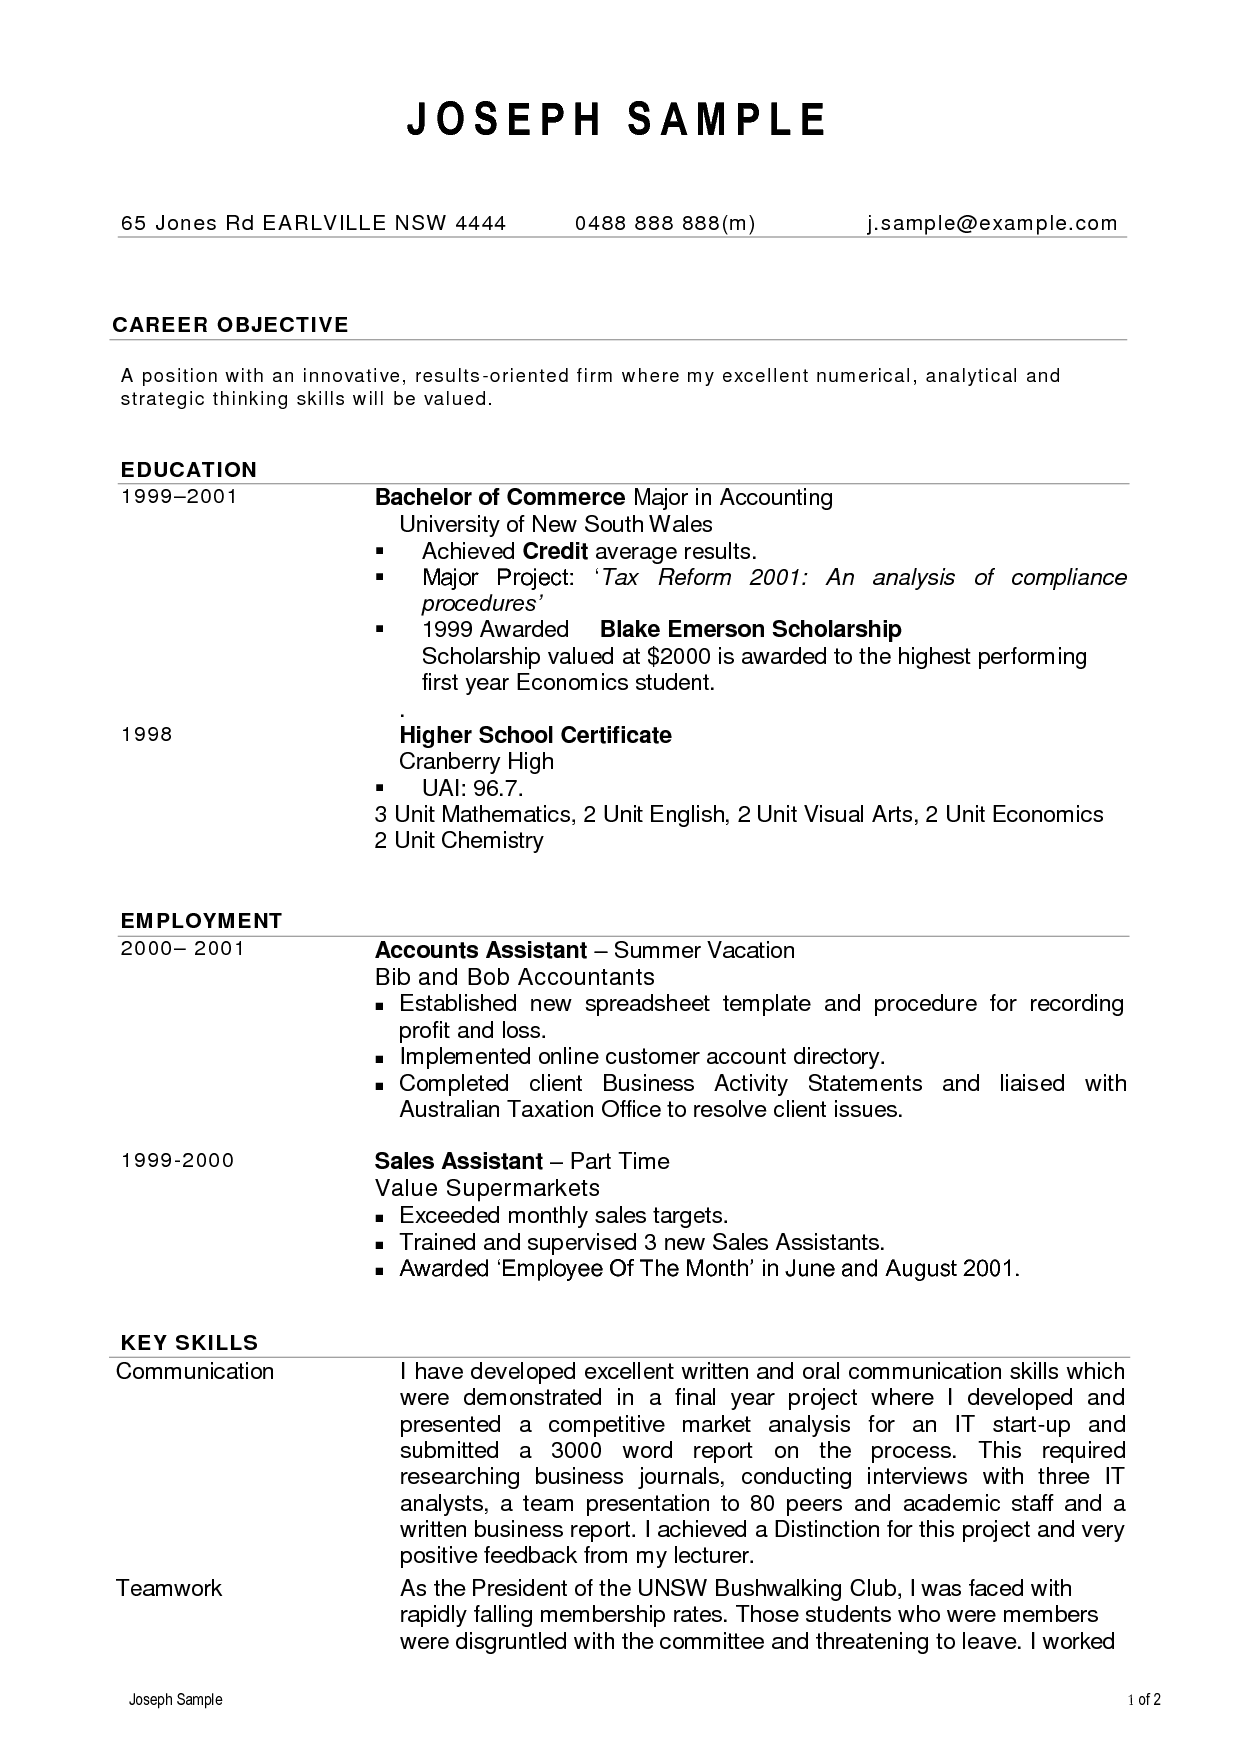 effective resume formats | resume template | Pinterest | Resume format